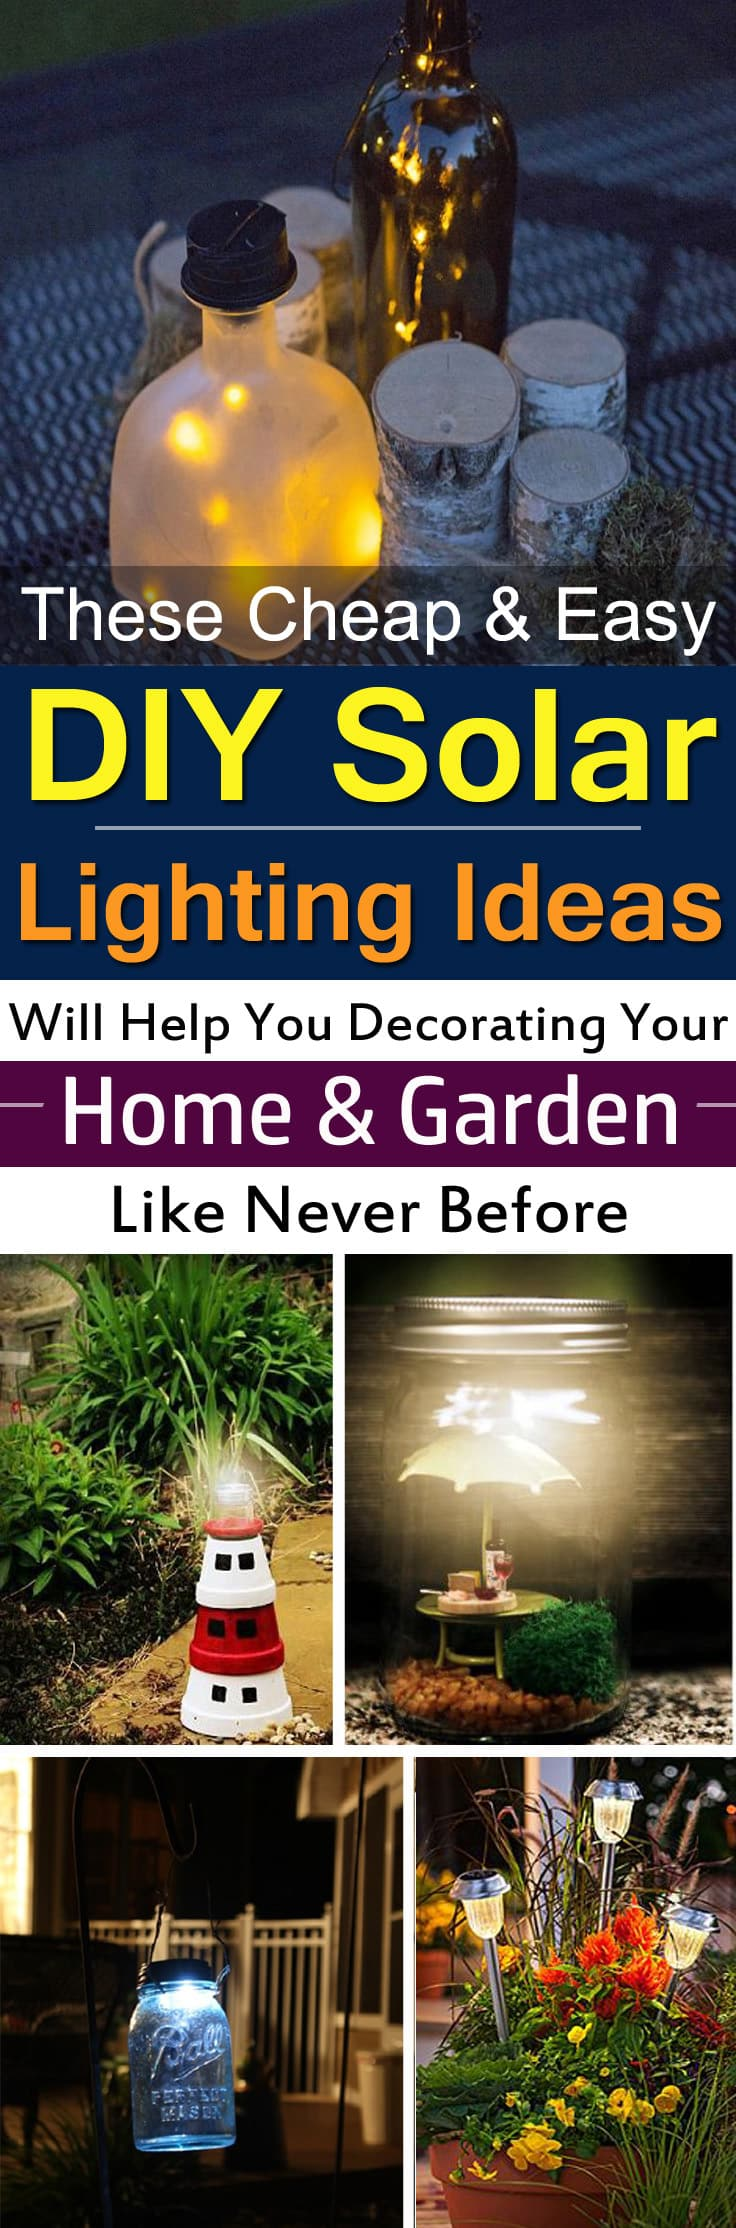 These DIY Solar Light Projects are inexpensive and easy to follow and can beautify your home and garden at night in no time.